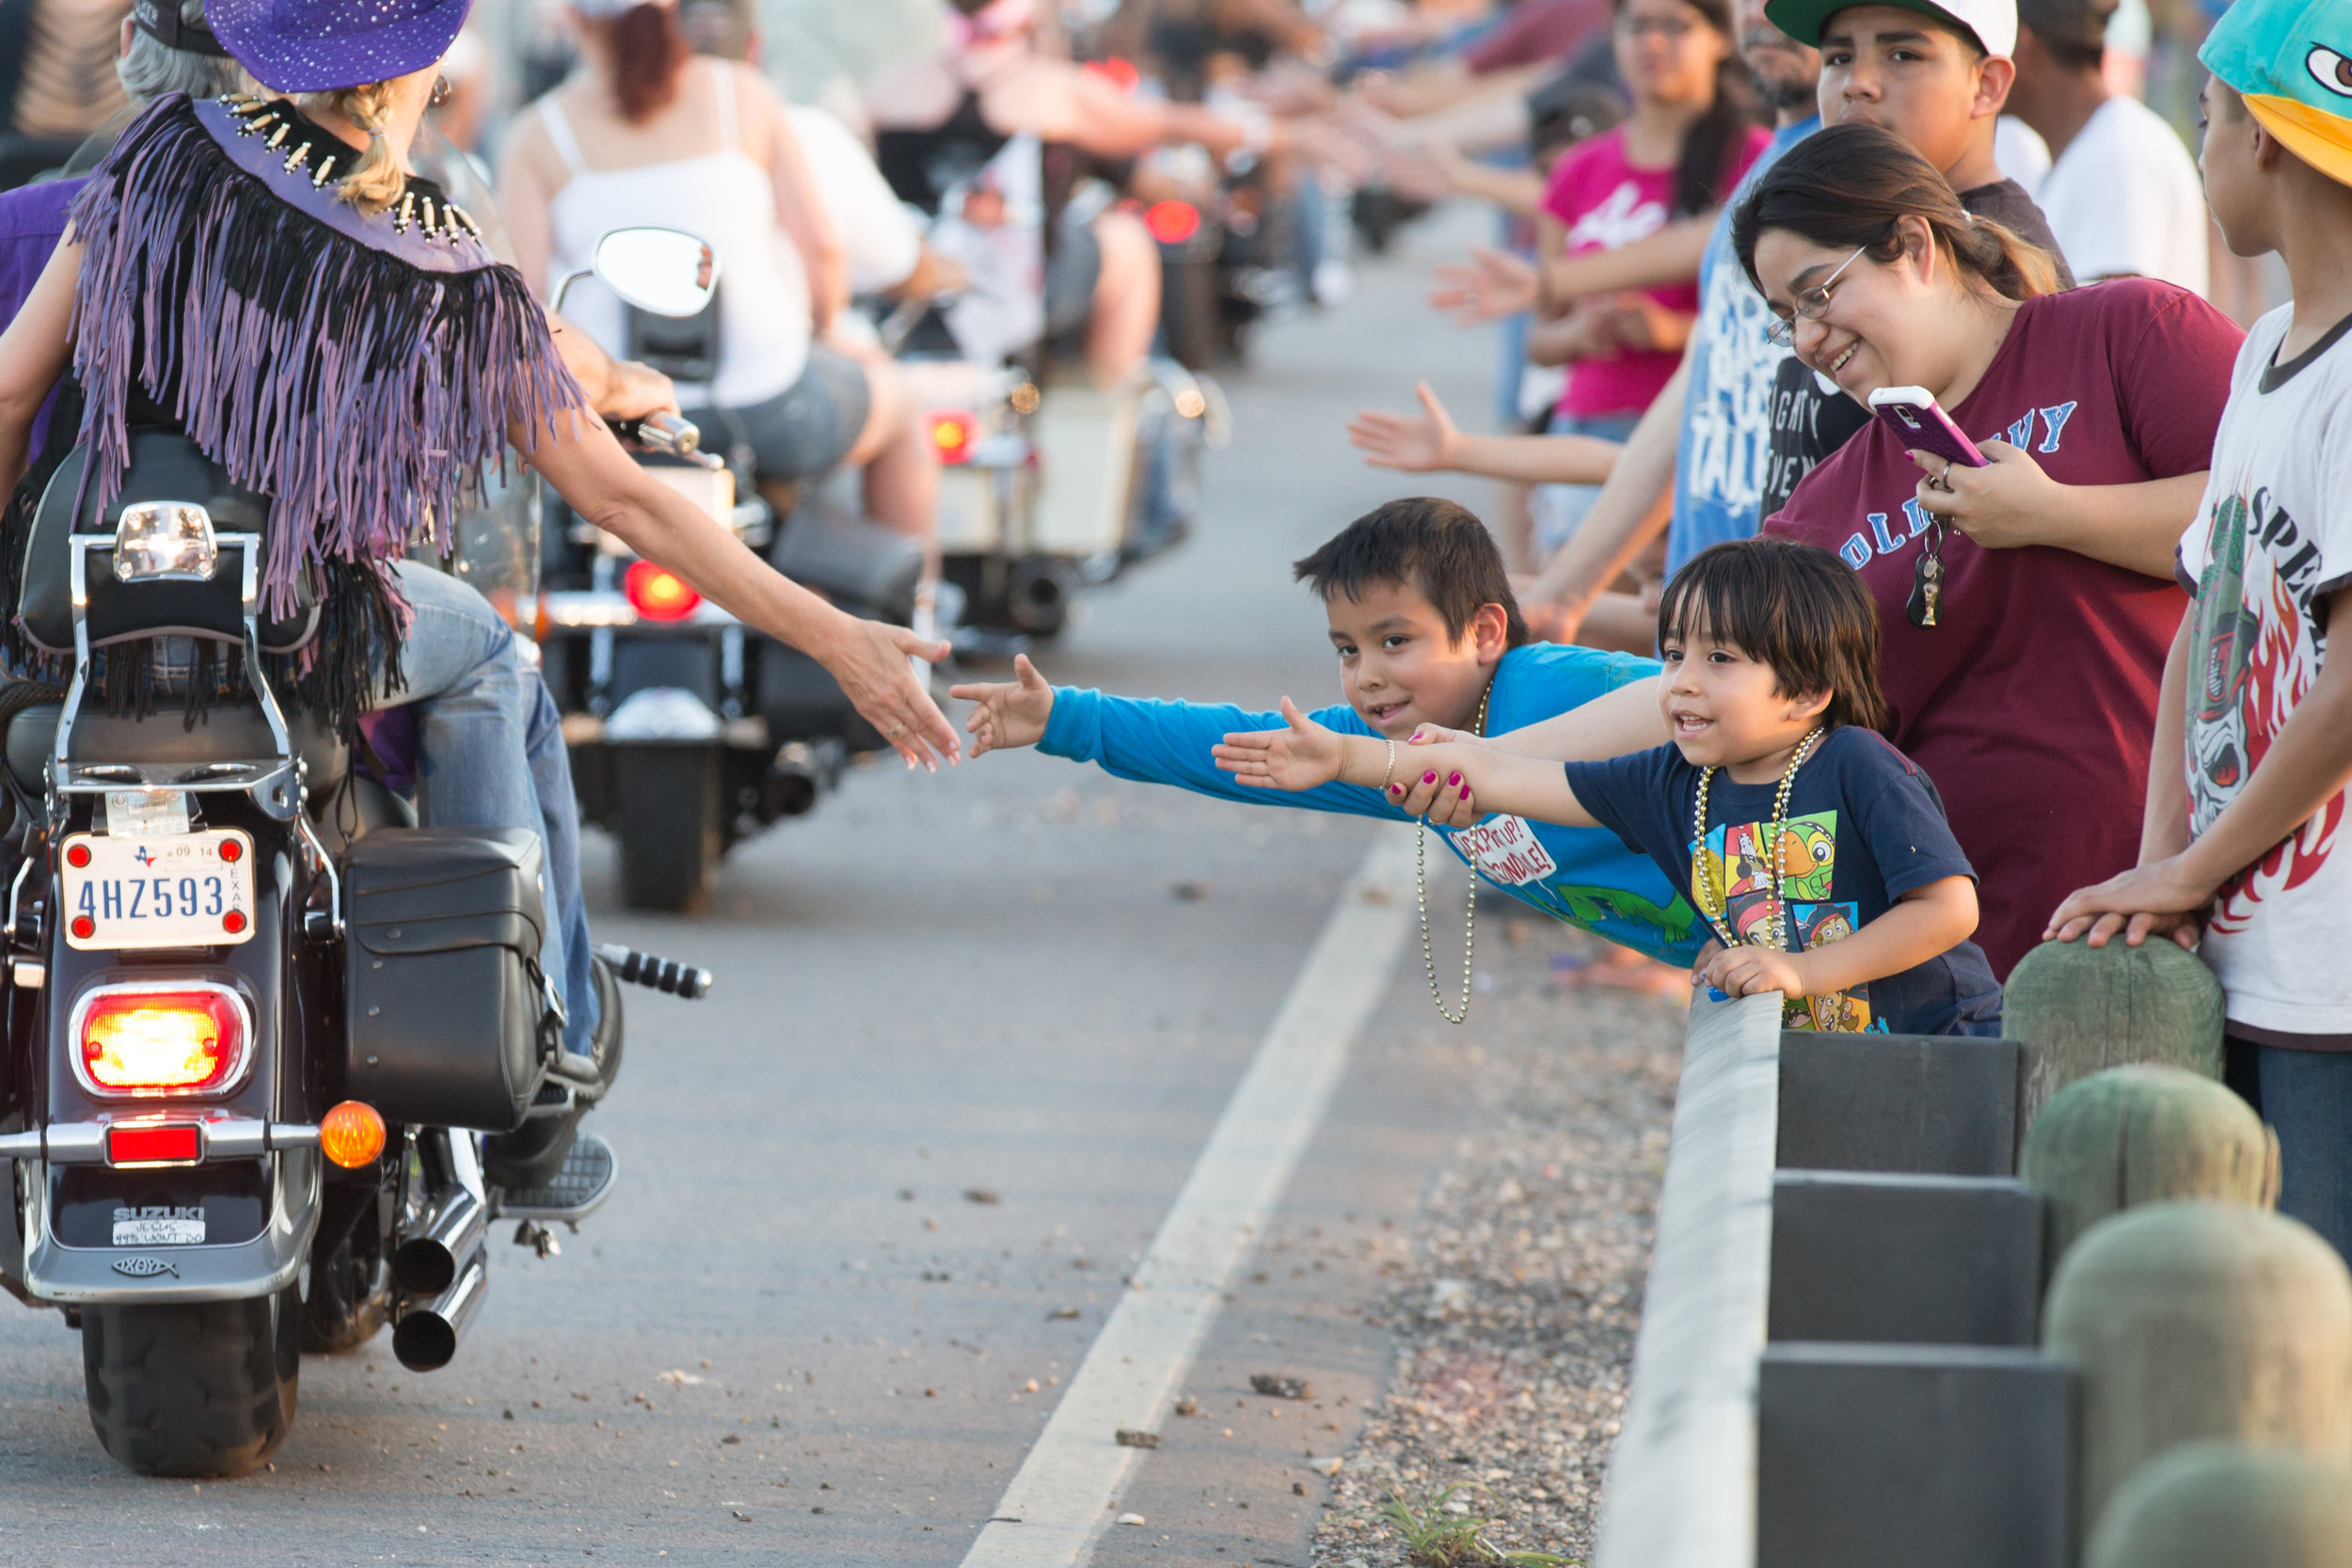 An onlooker high fives riders taking part in the Austin Republic of Texas Bike Rally.